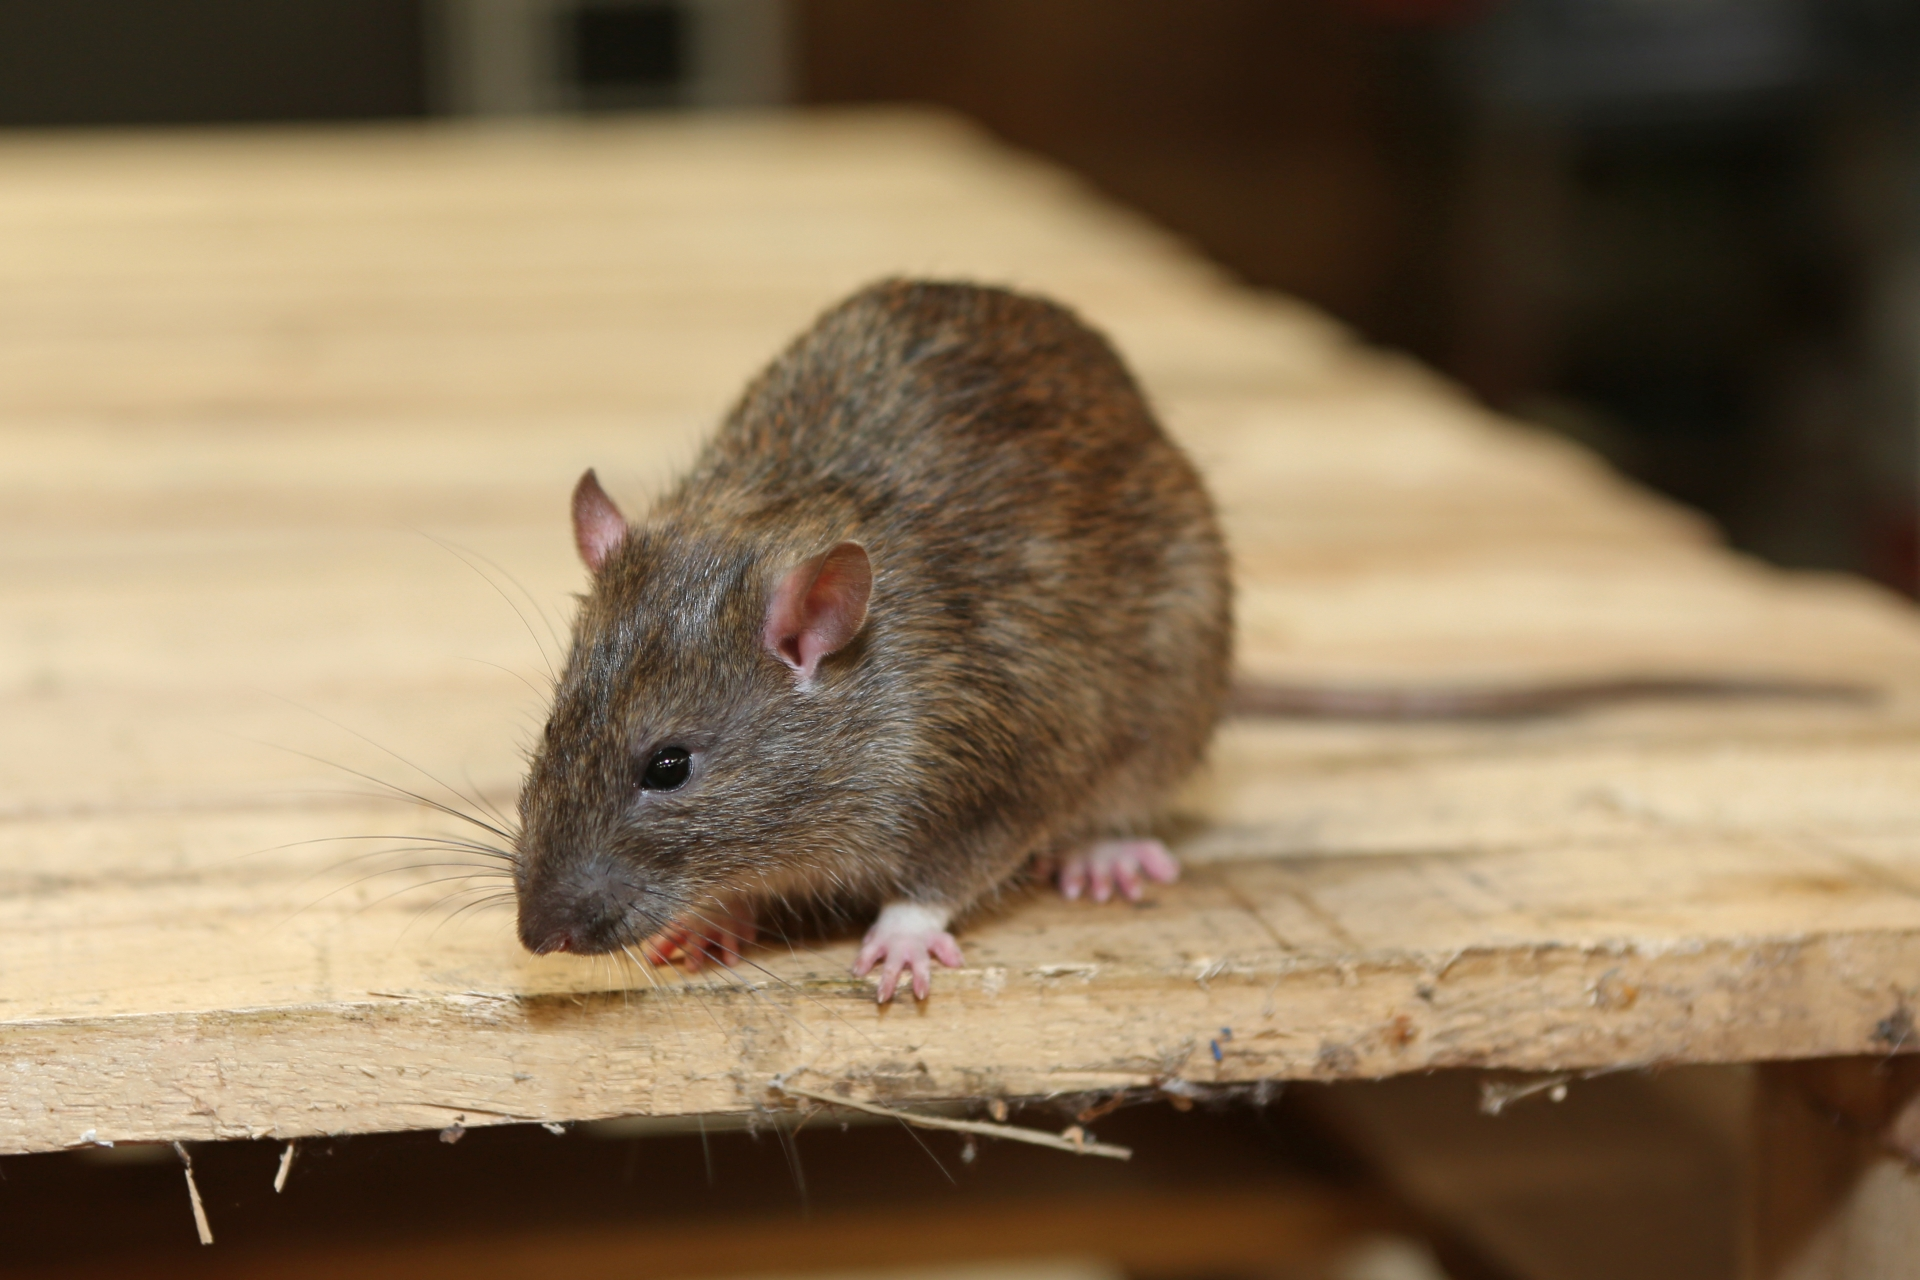 Rat Infestation, Pest Control in Chiswick, W4. Call Now 020 8166 9746